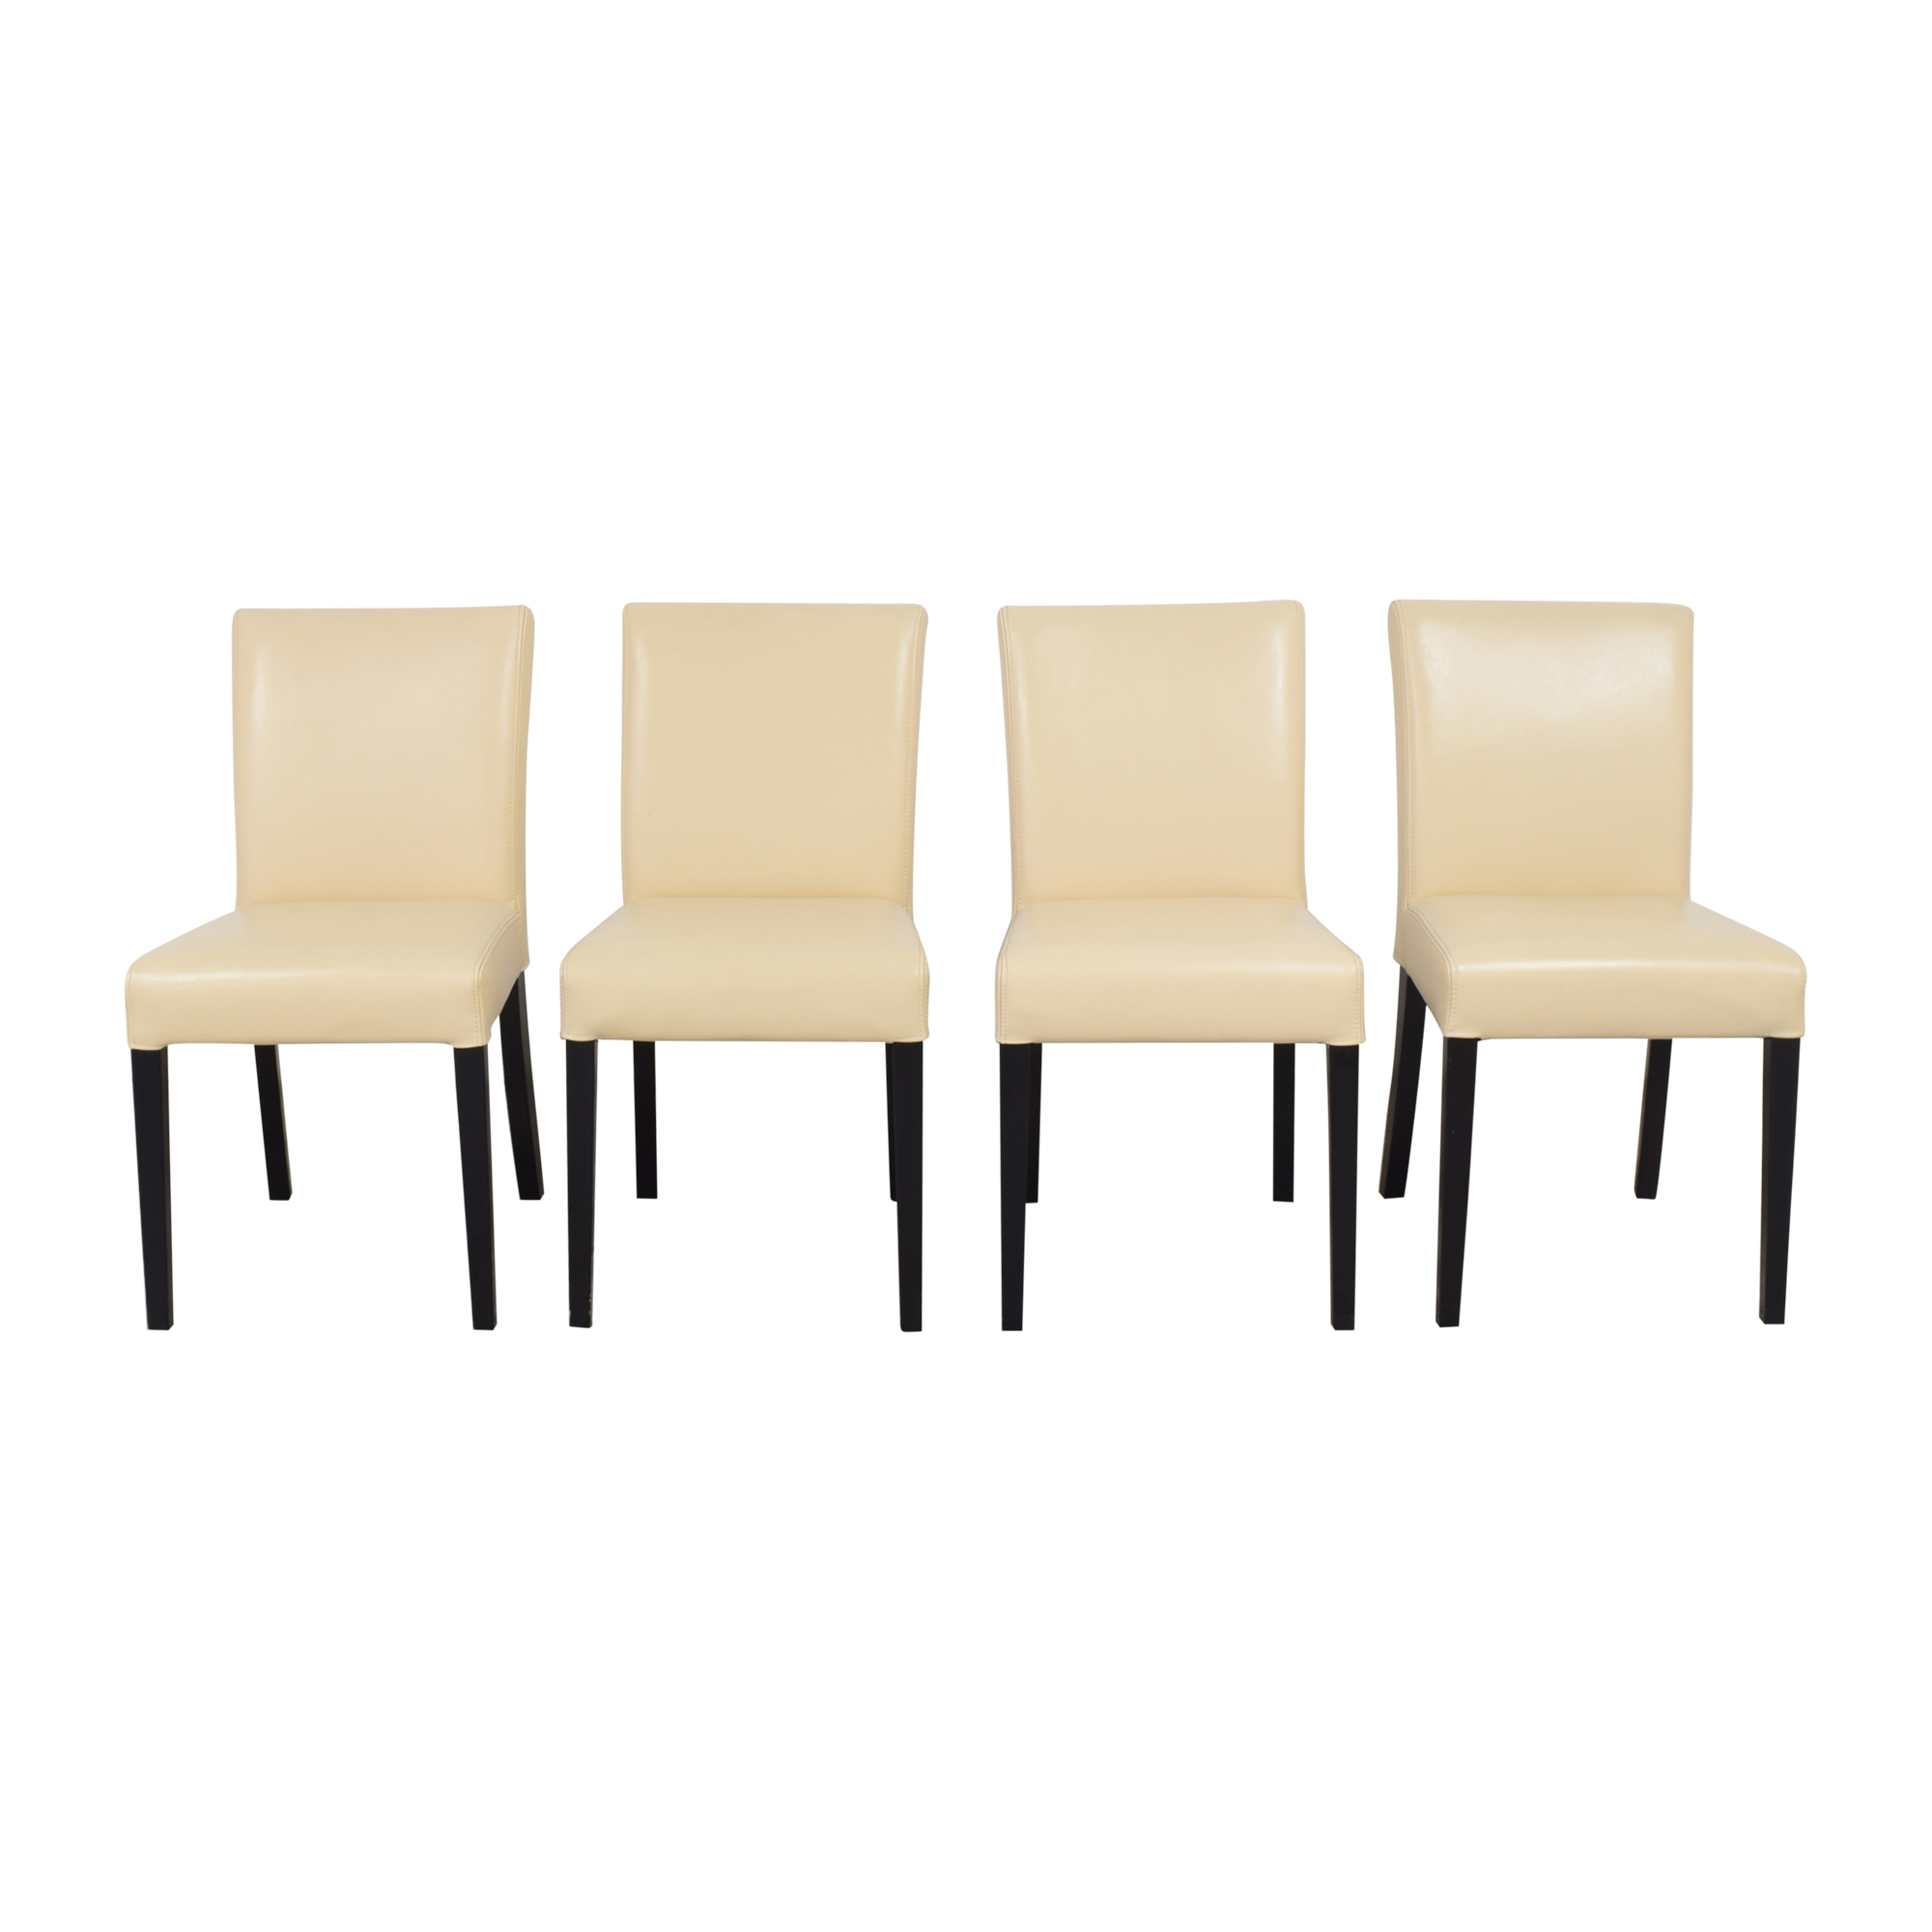 Crate & Barrel Lowe Dining Side Chairs Crate & Barrel